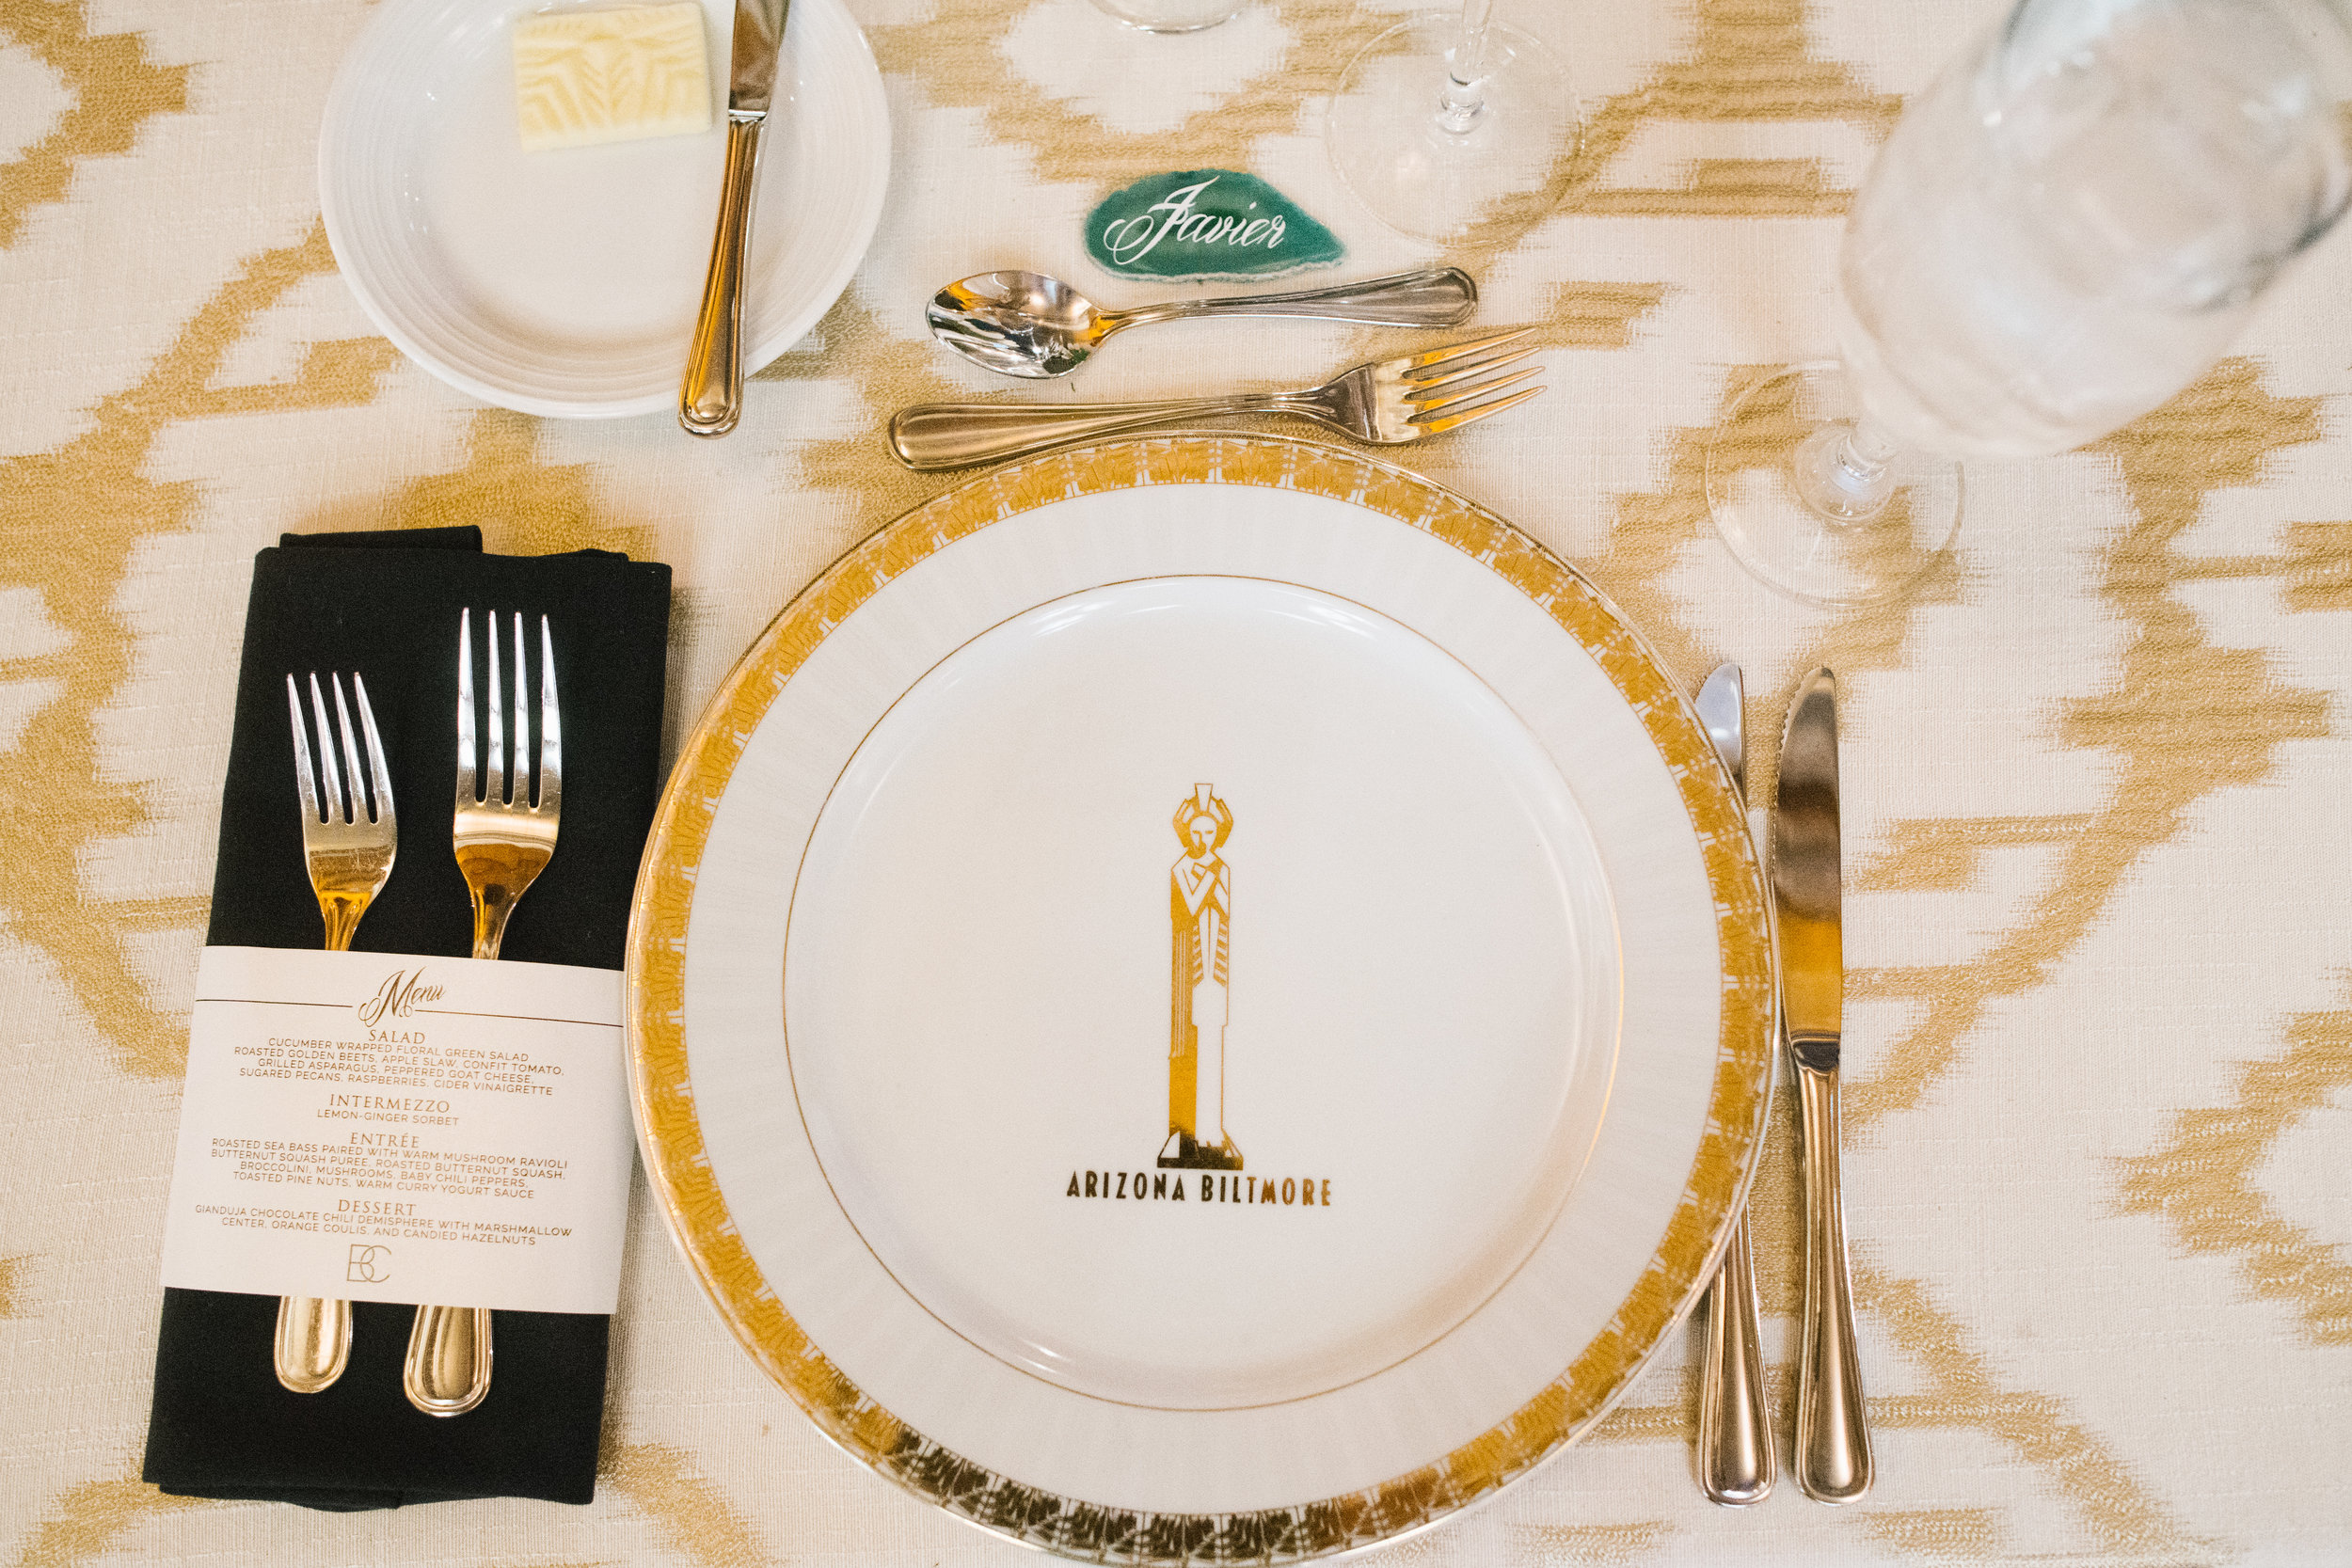 16 place setting reception dinner table reception dinner menu arizona biltmore gold charger agate slice place card assigned seat gold table linen Life Design Events photos by Keith and Melissa Photography.jpg